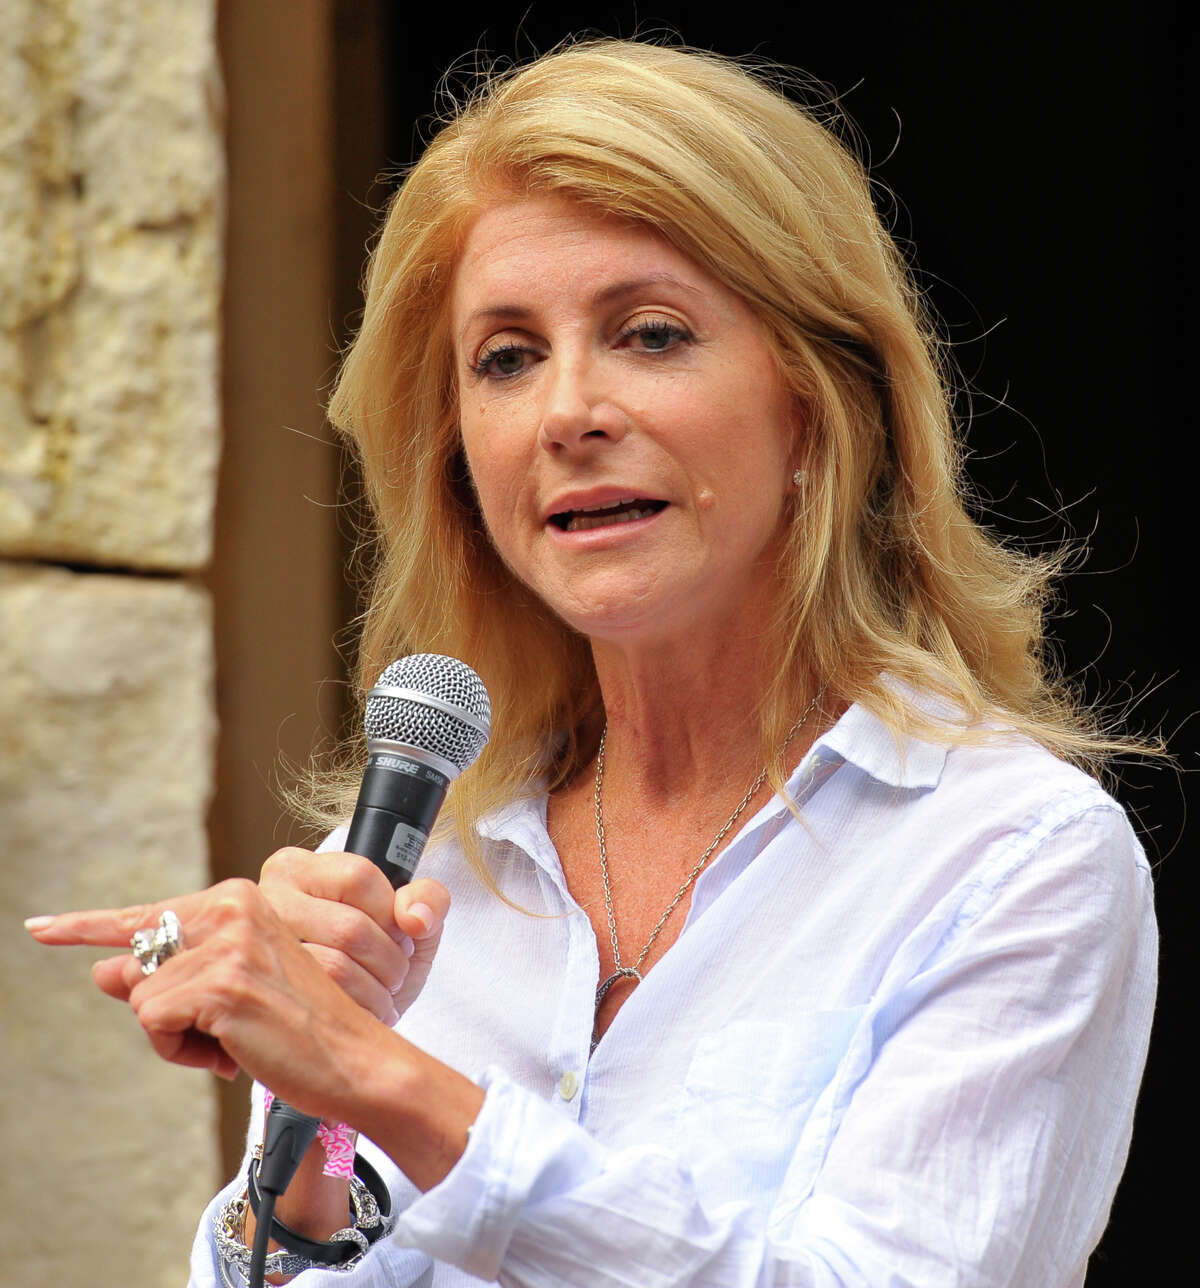 The state needs a change in leadership. The Editorial Board recommends Democratic gubernatorial candidate Wendy Davis.